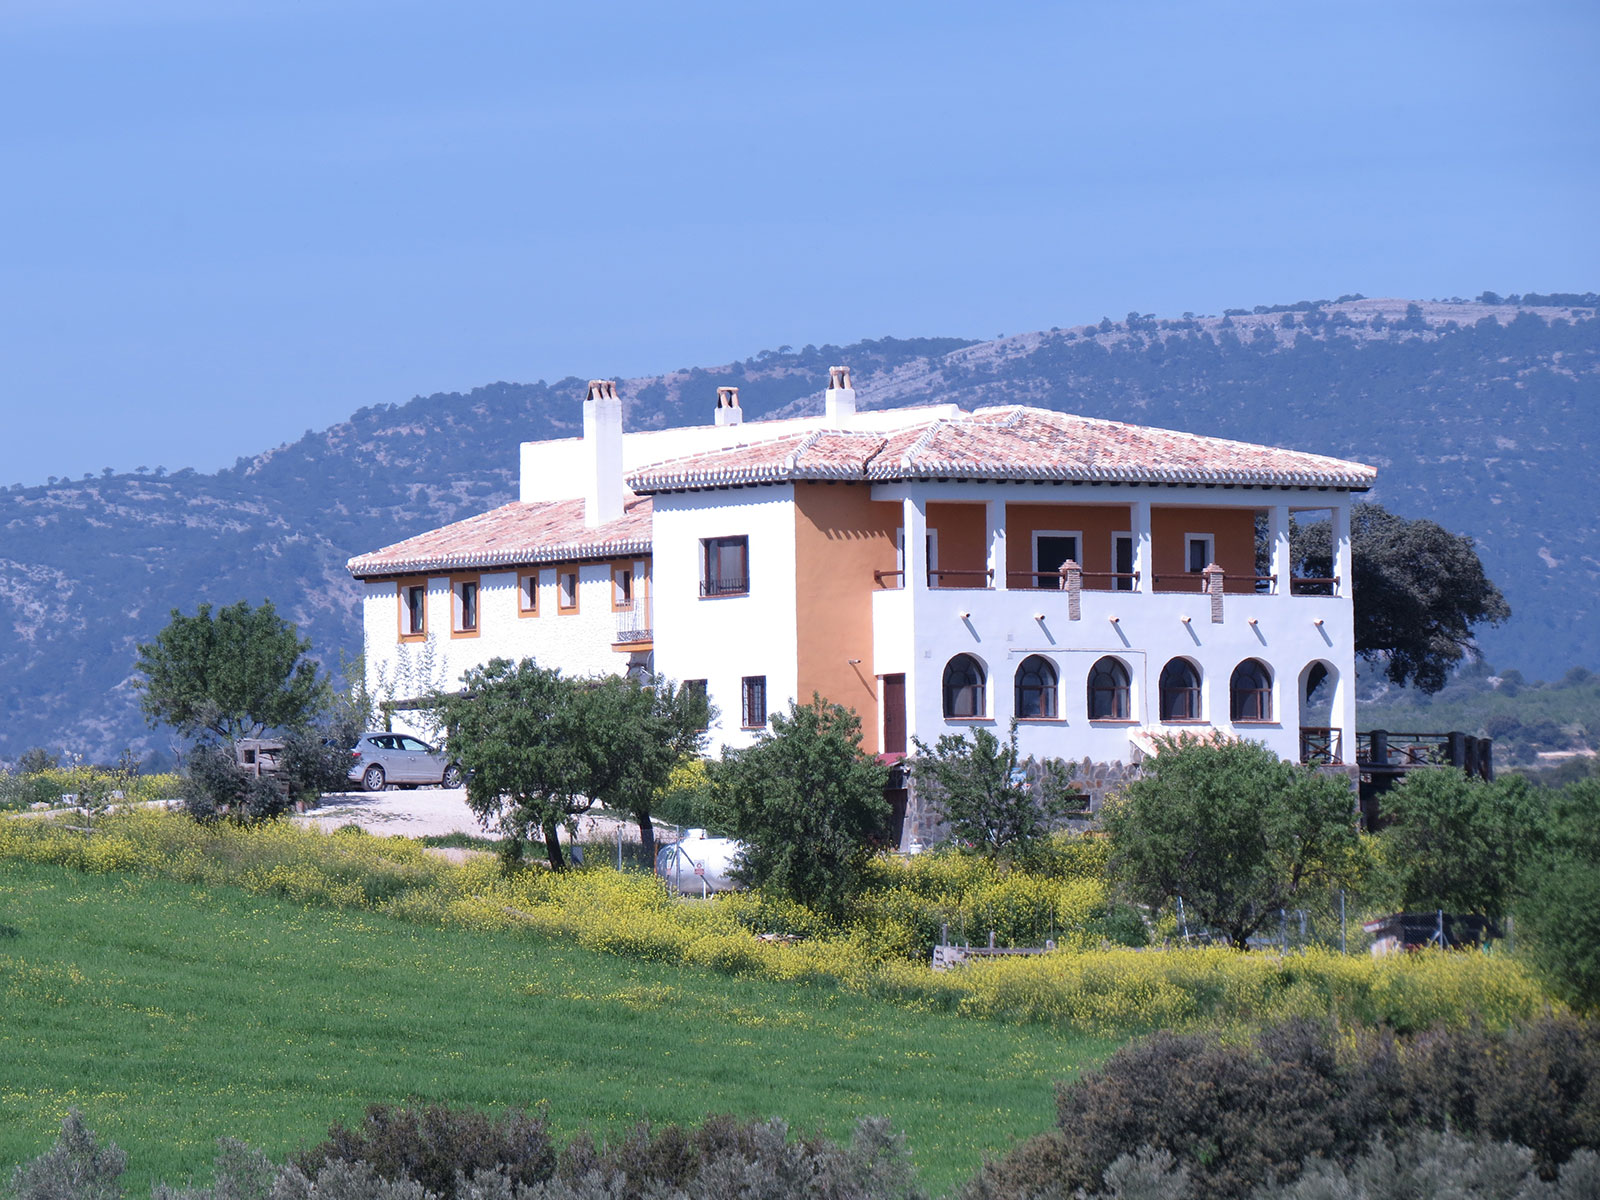 House rental, Eco Hotel family activity holiday andalusia spain, Responsible travel